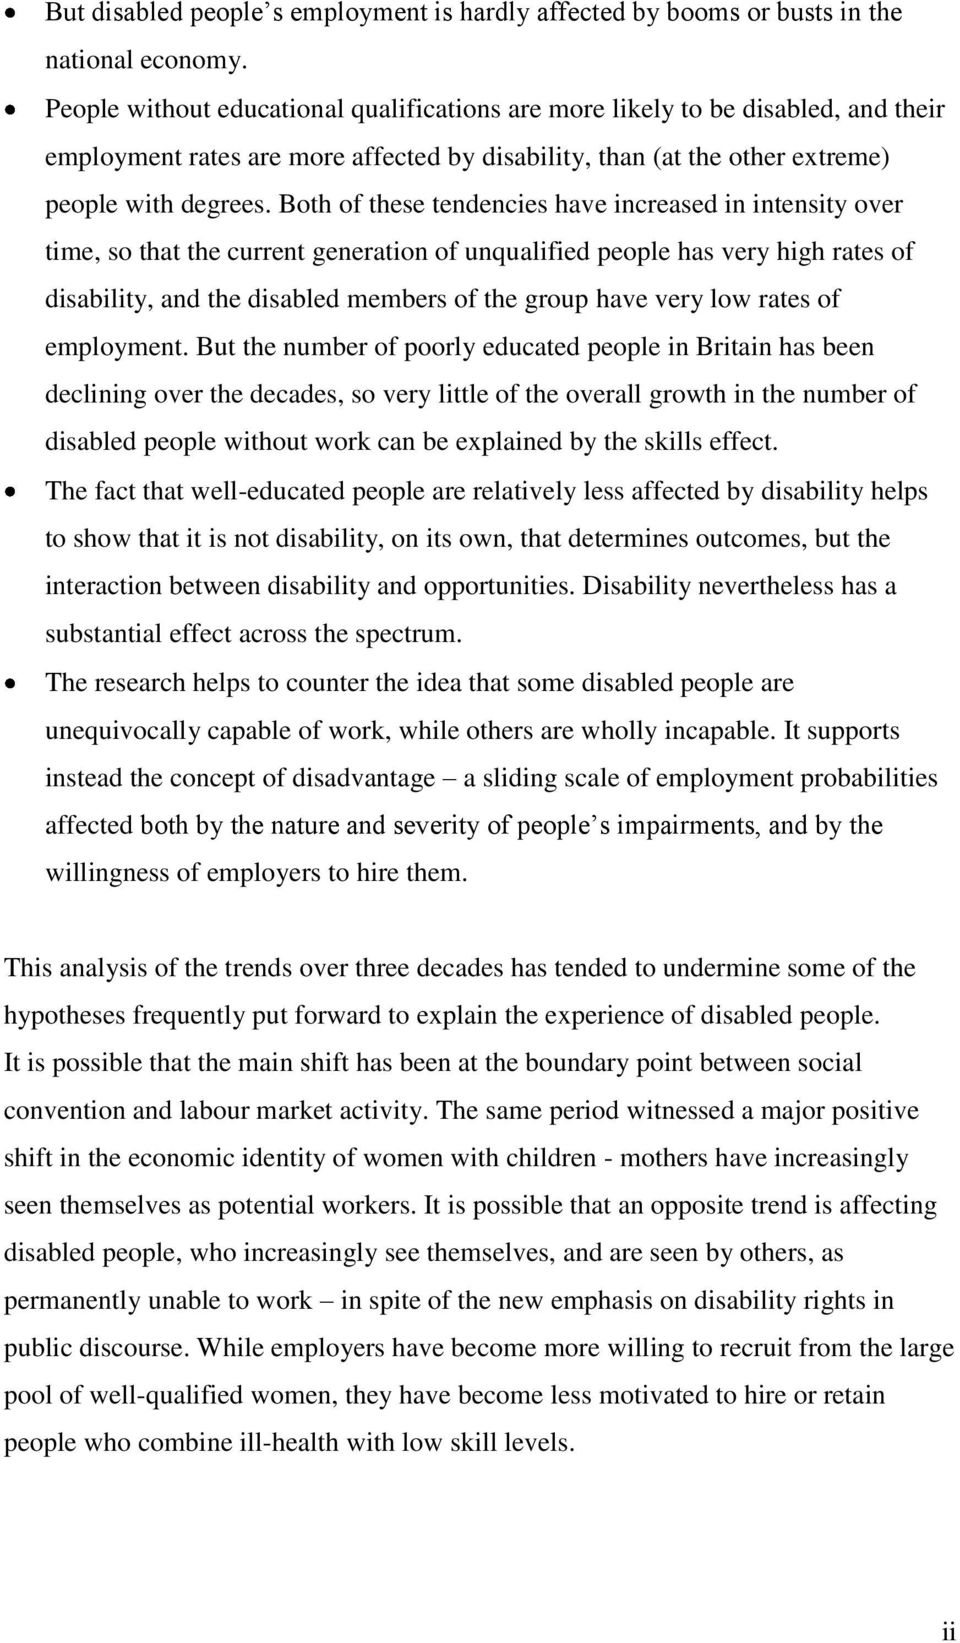 Both of these tendencies have increased in intensity over time, so that the current generation of unqualified people has very high rates of disability, and the disabled members of the group have very